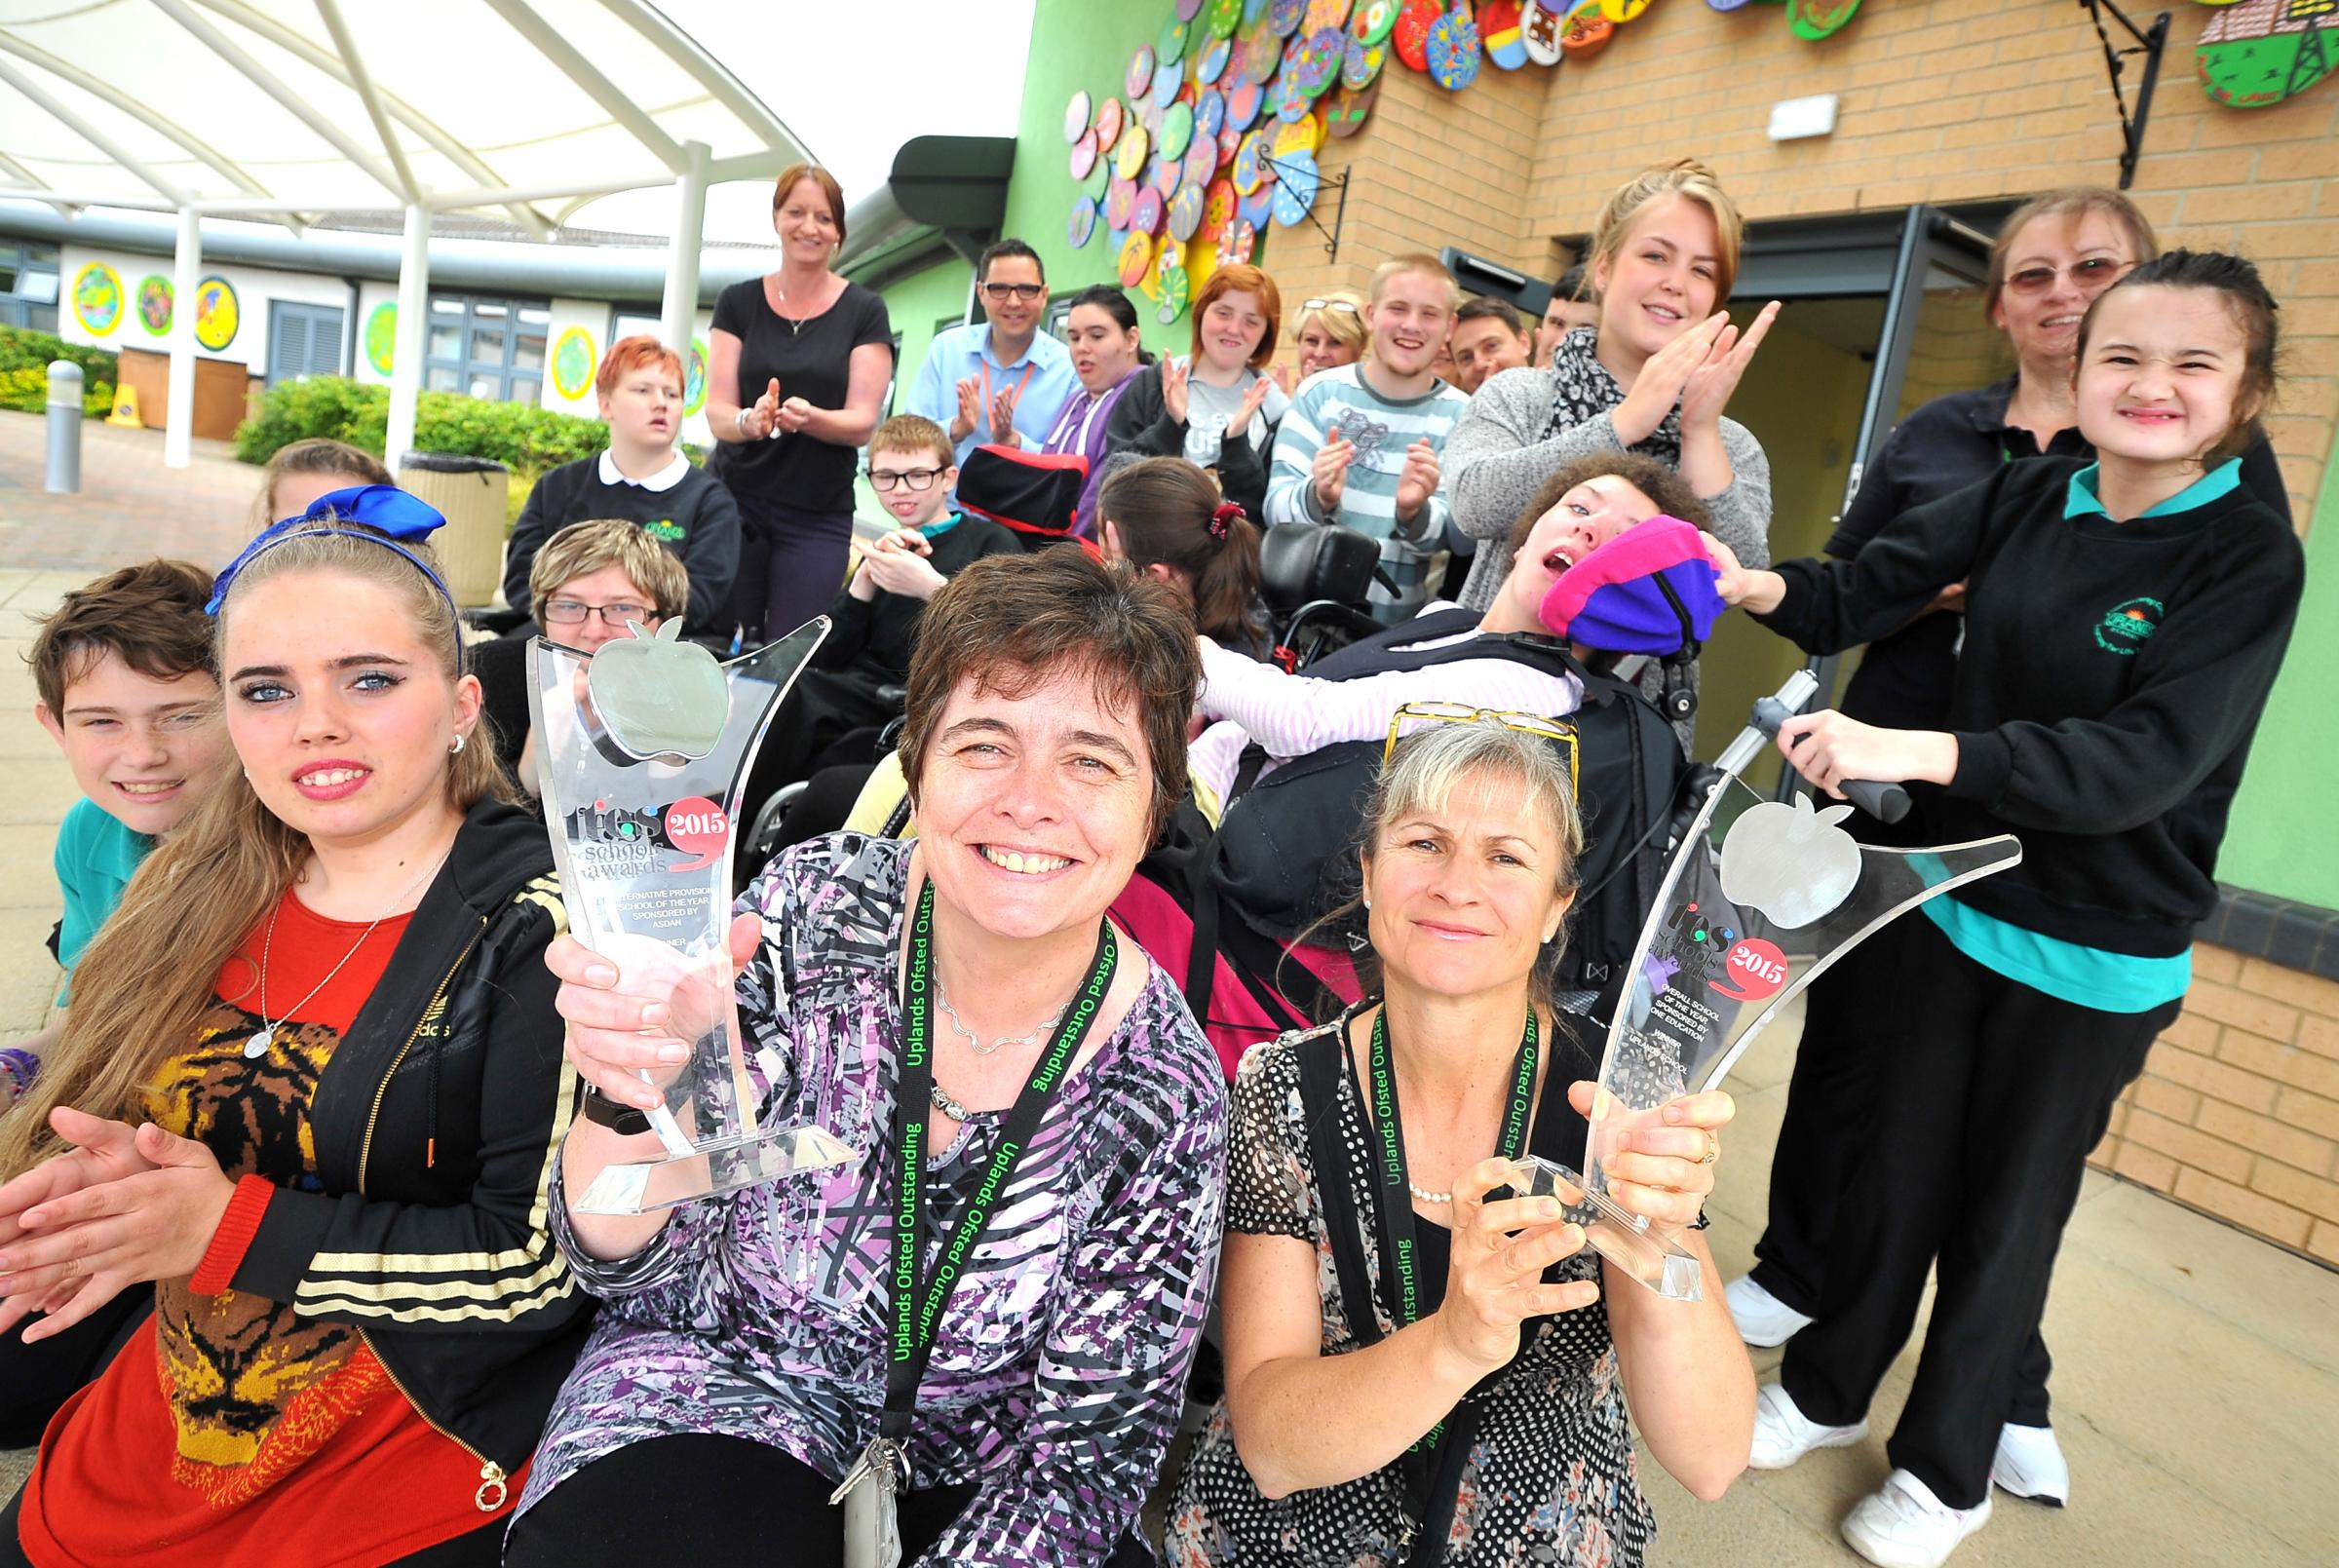 From left, showing off trophies are Uplands School headteacher Deirdre Fitzpatrick and executive headteacher Jackie Smith, with proud school pupils